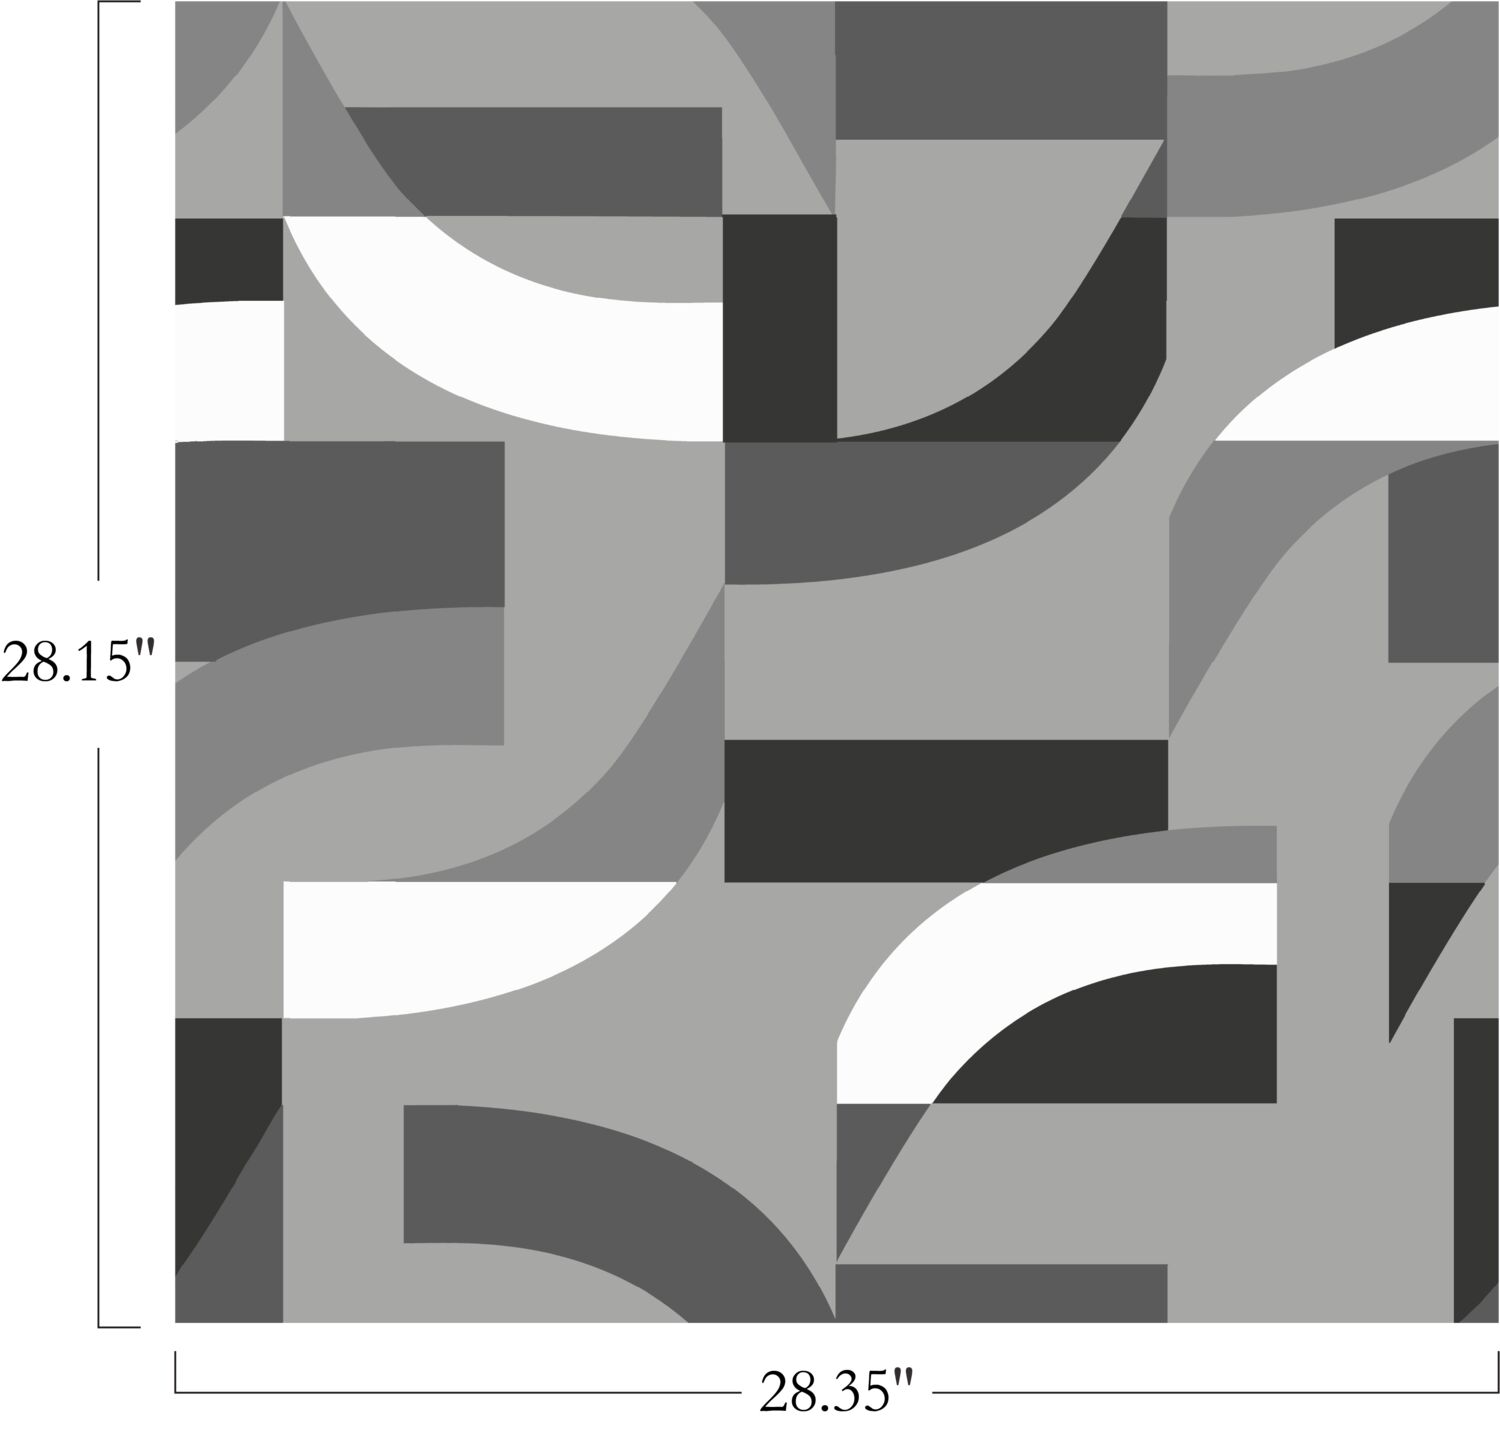 Schema - Cross Section - 4071 - 01 Pattern Repeat Image